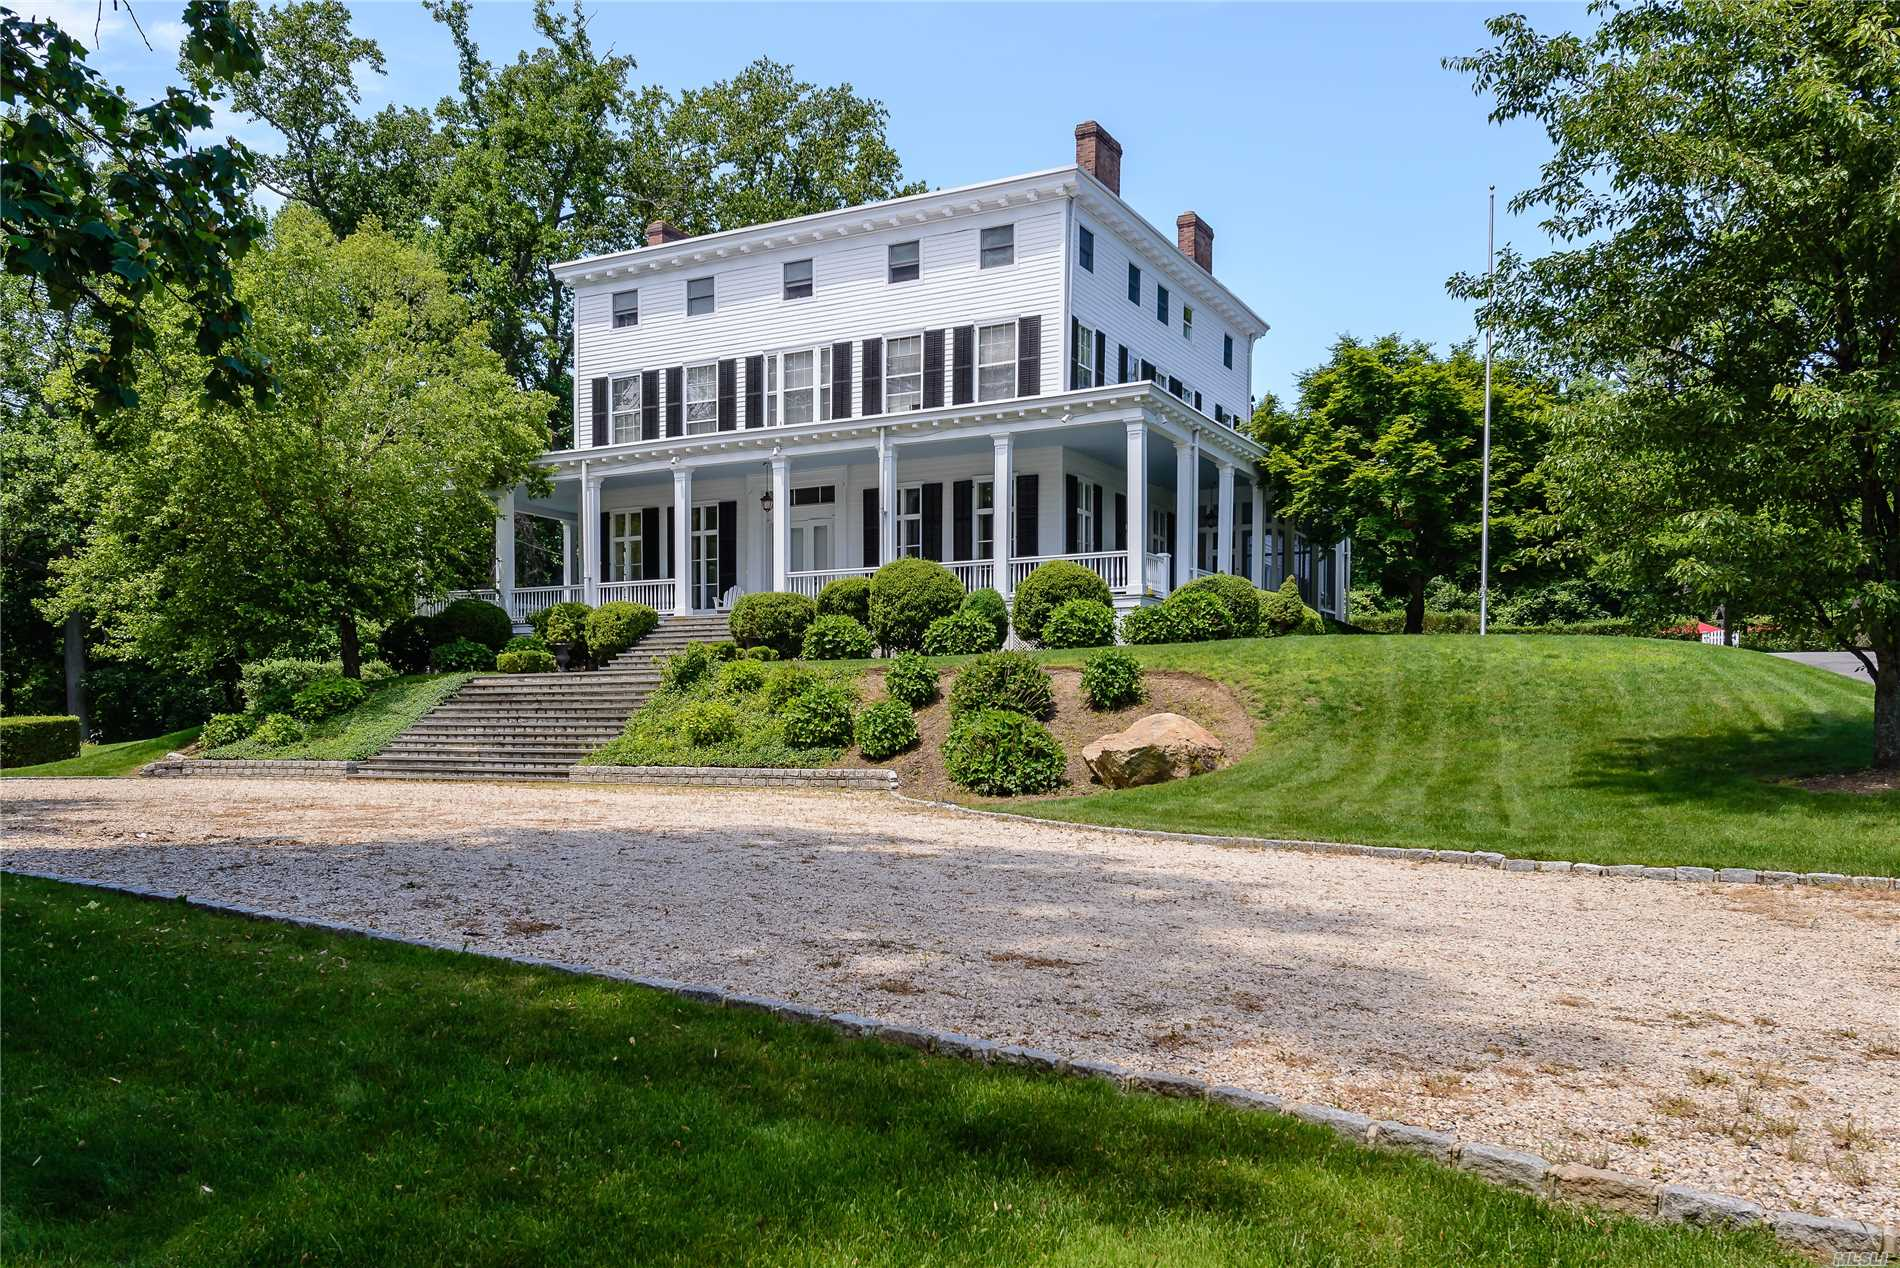 Magnificent Plantation Style Colonial With 200 ' Covered Porches, New Kitchen, Wood Floors, 12 Foot Ceilings And 7 Fireplaces. Ideal For Entertaining. New Pool And Patio By The Pool. Hot Tub.